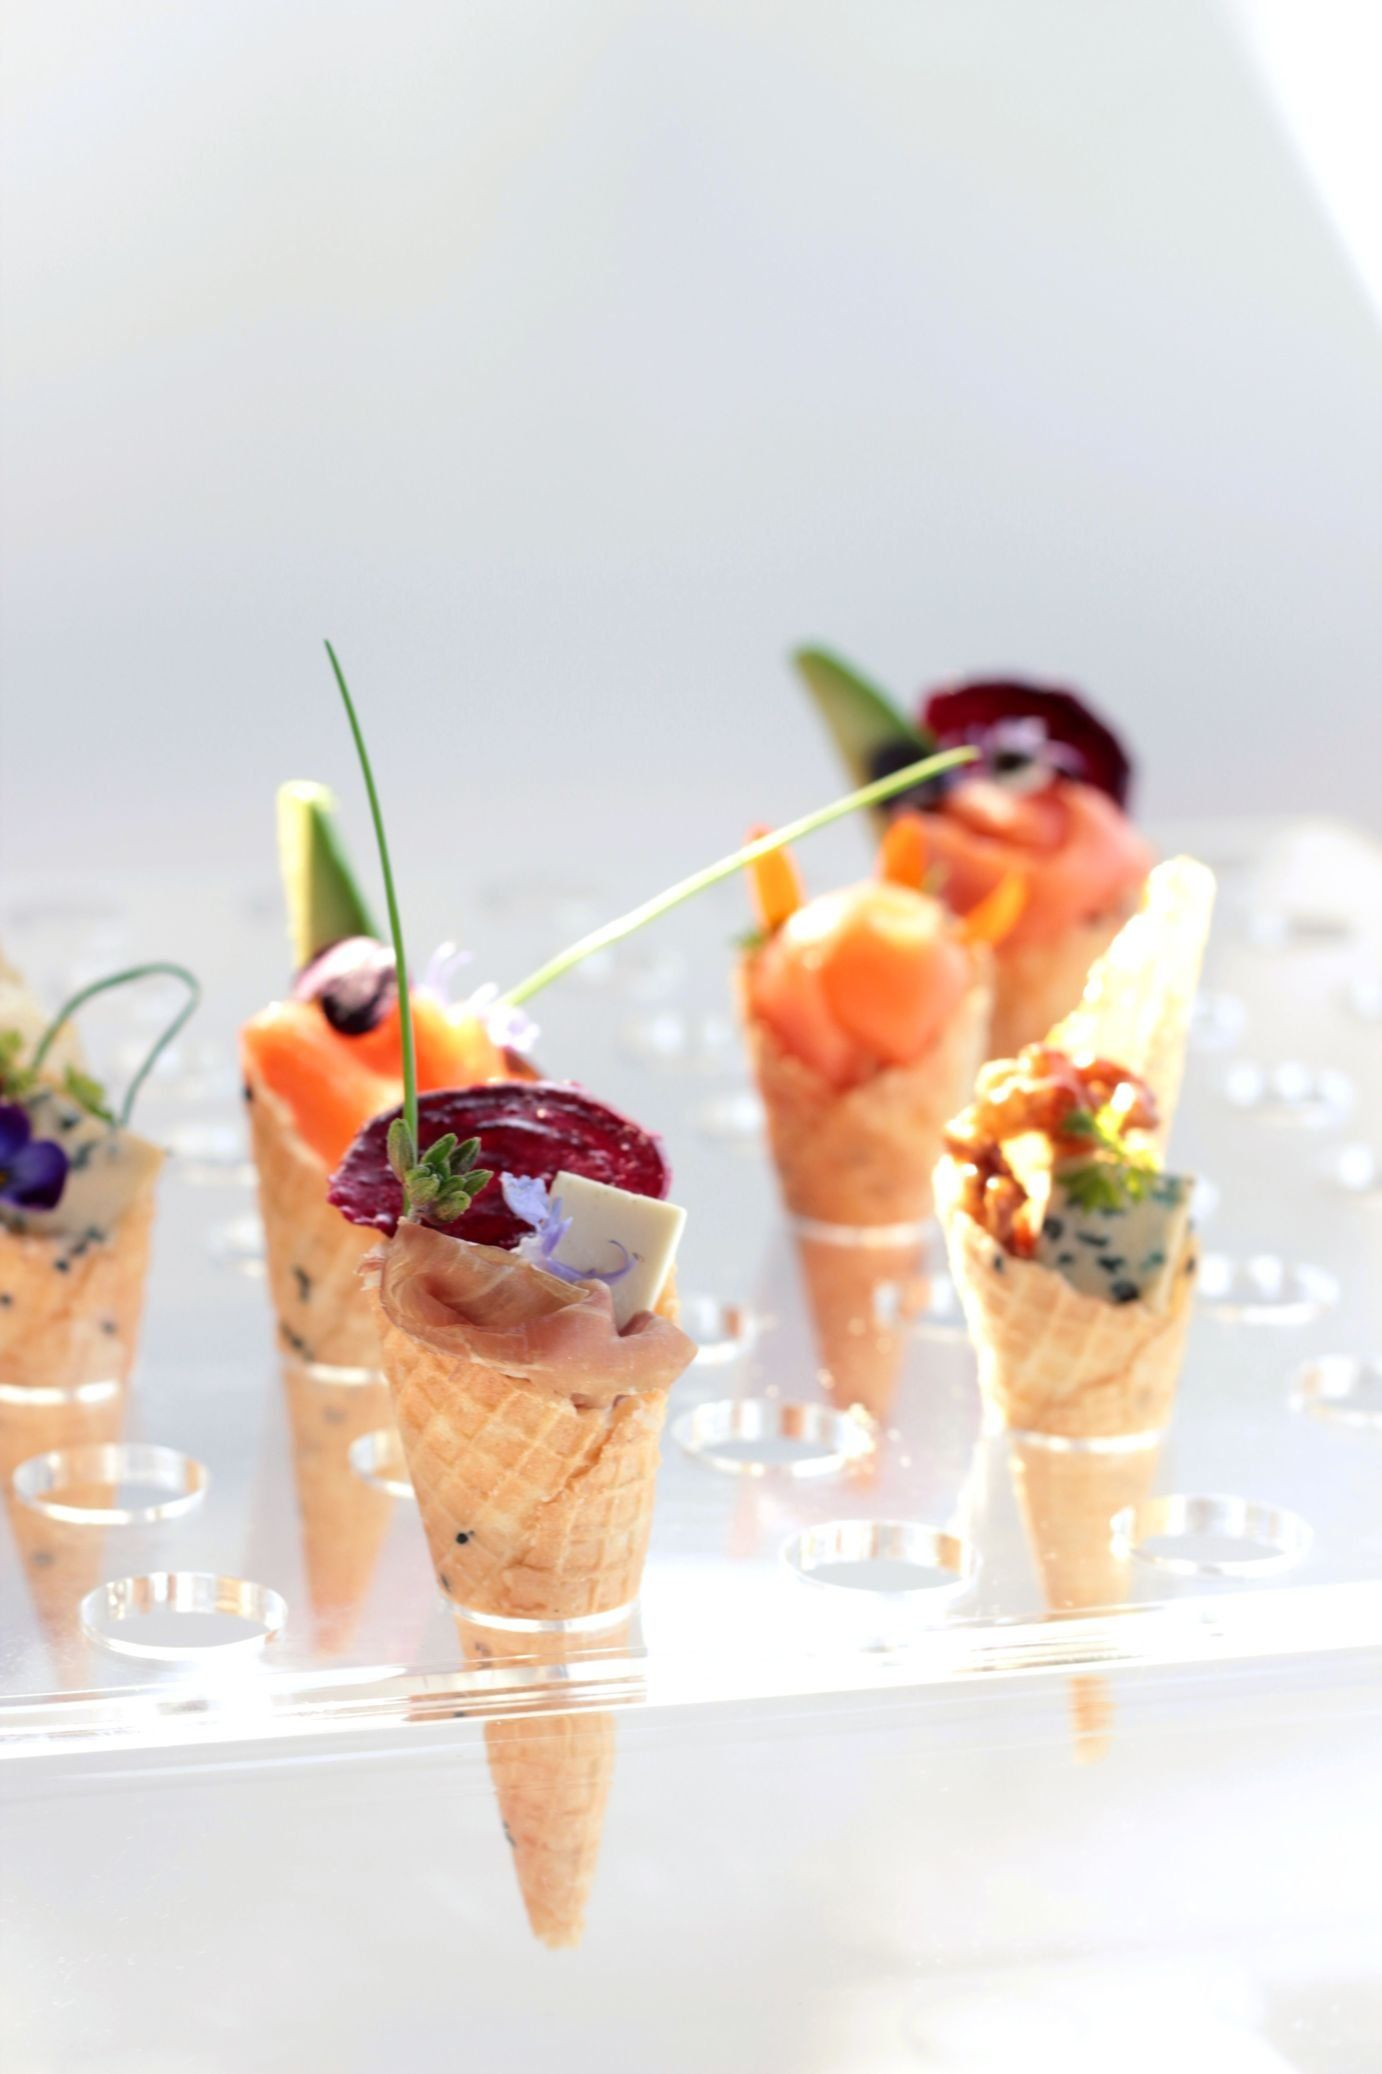 A selection of savory cone canap s wedding canap ideas for Canape ideas for weddings